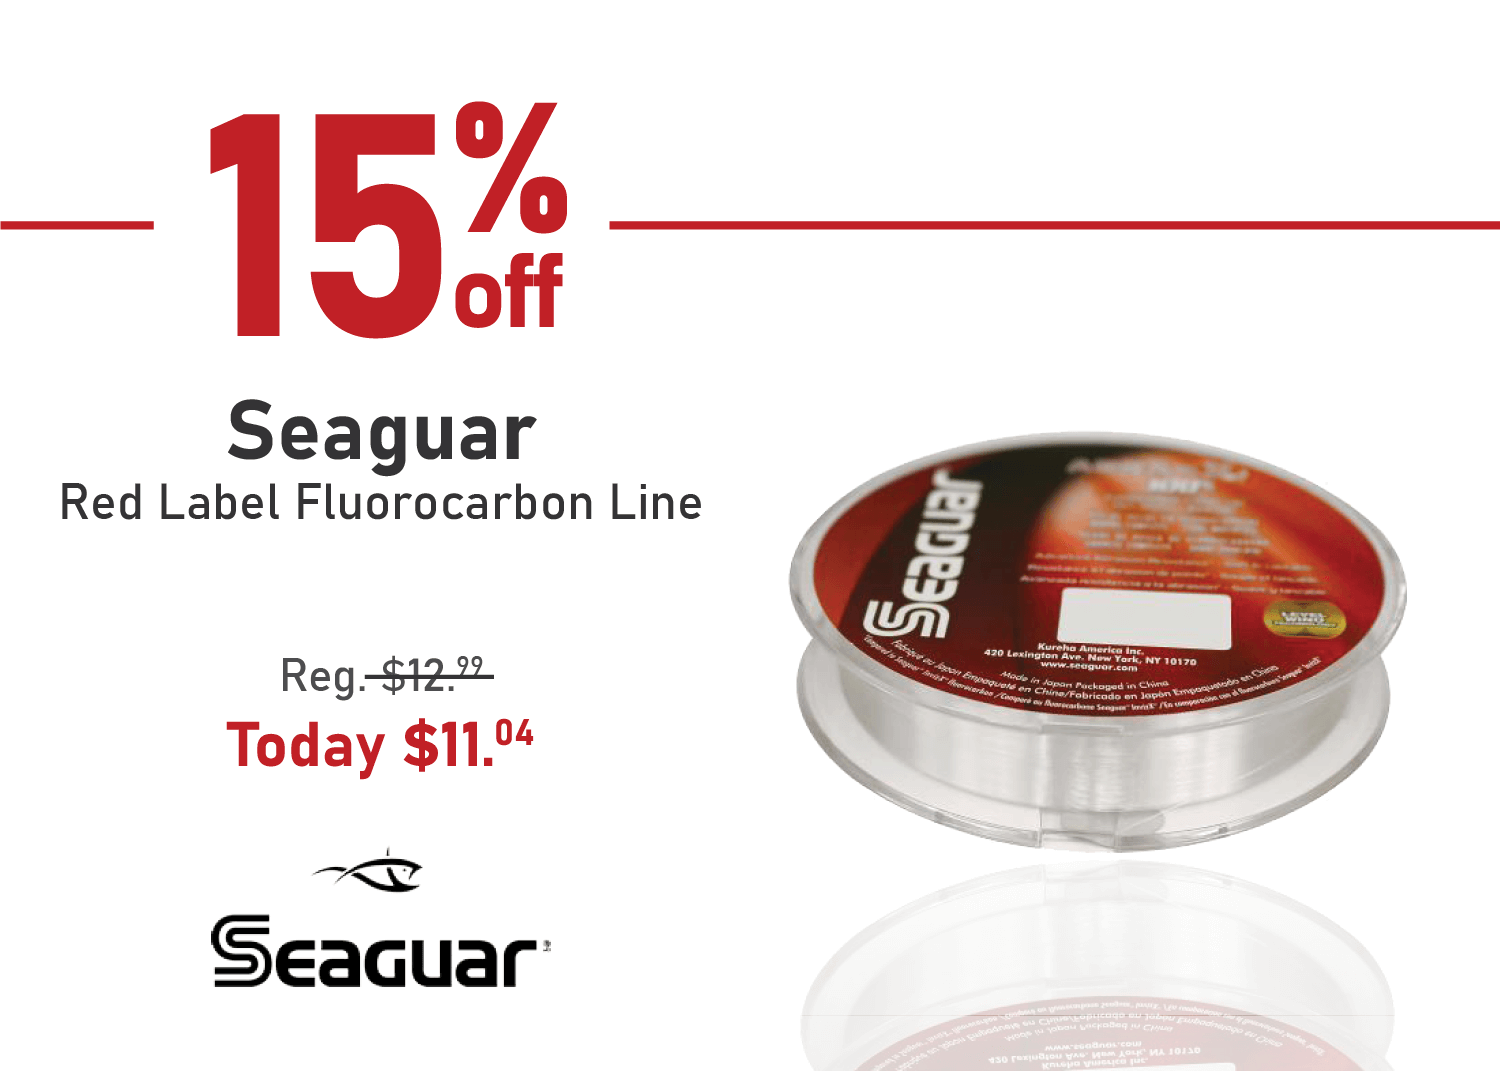 Save 15% on the Seaguar Red Label Fluorocarbon Line